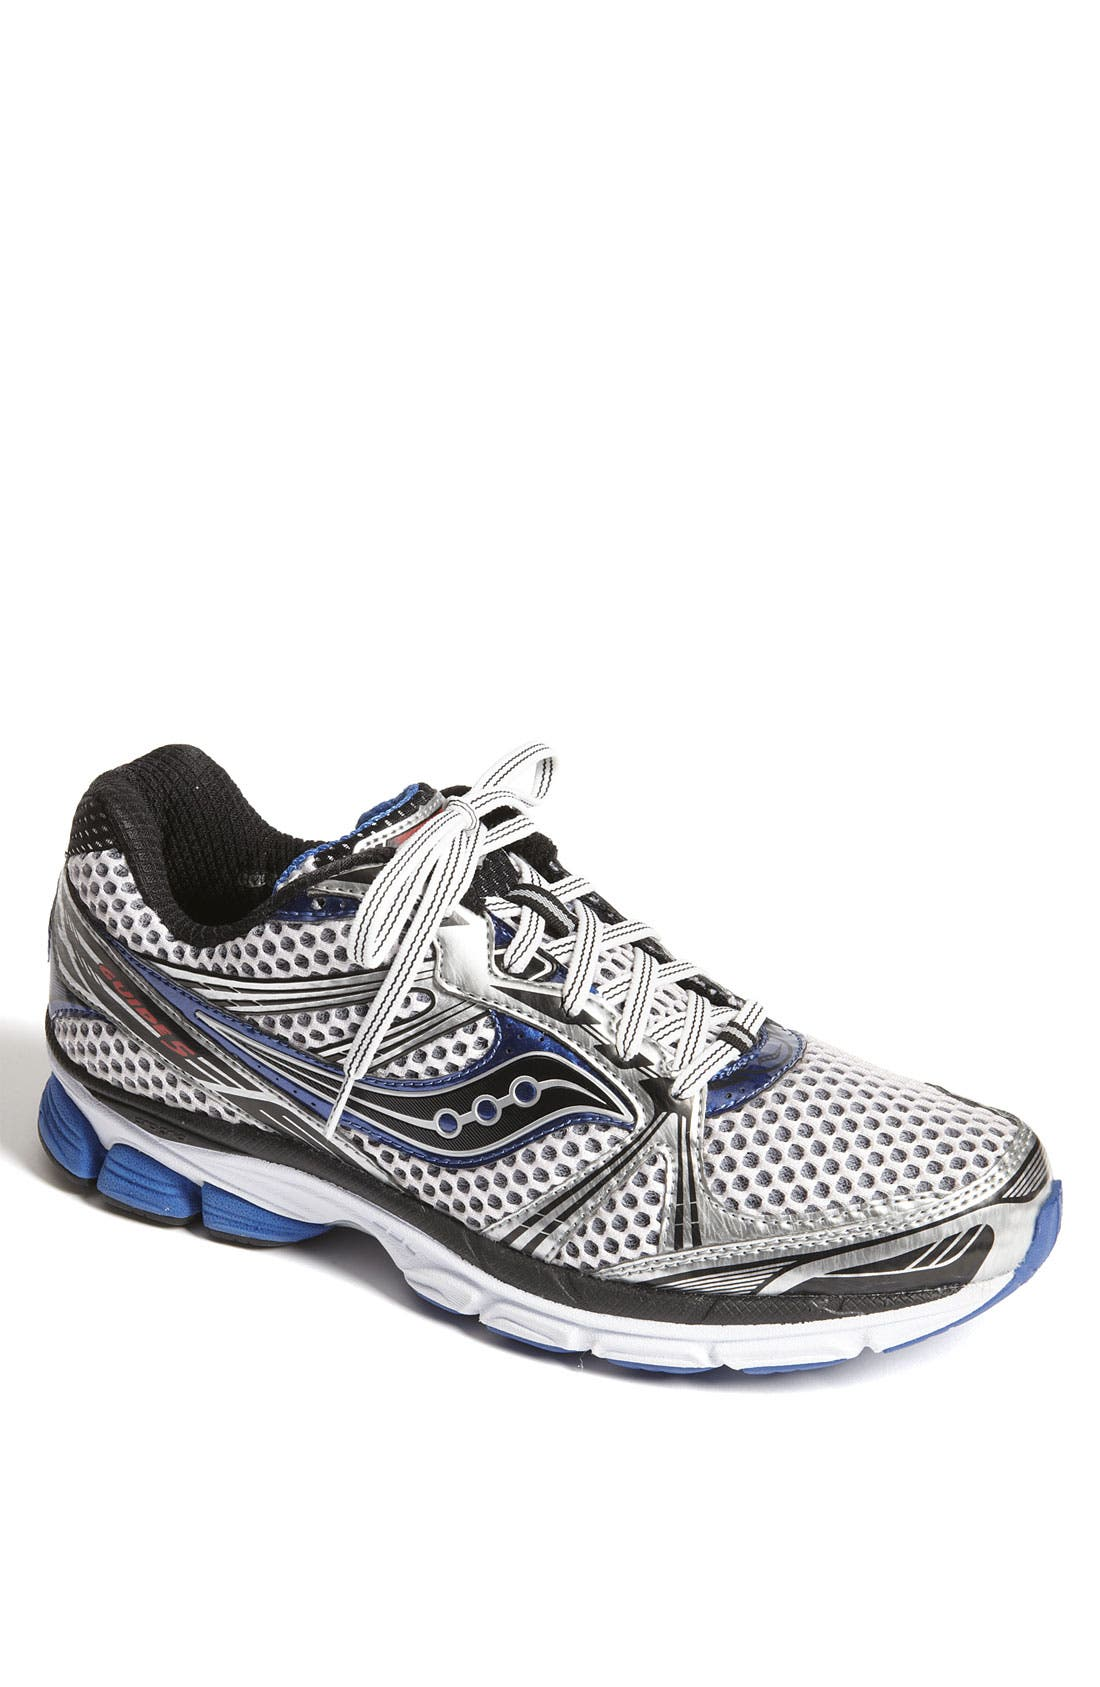 Main Image - Saucony 'ProGrid Guide 5' Running Shoe (Men)